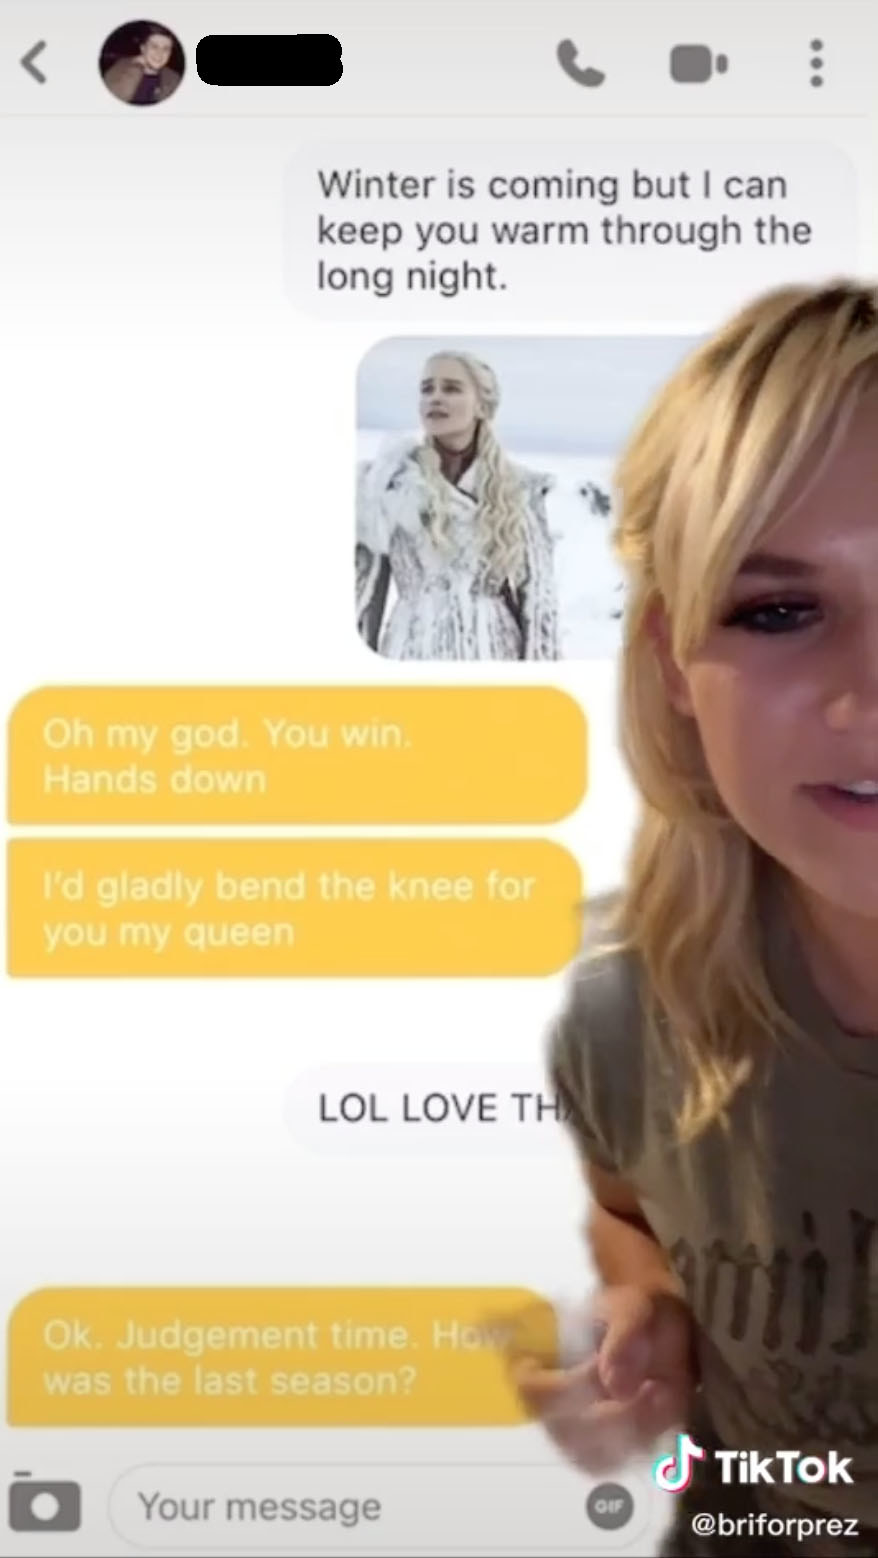 """The Bumble match replies: """"Oh my god, you win, hand down; I'd gladly bend the knee for you me queen"""" before then asking a follow up question: """"How was the last season"""""""